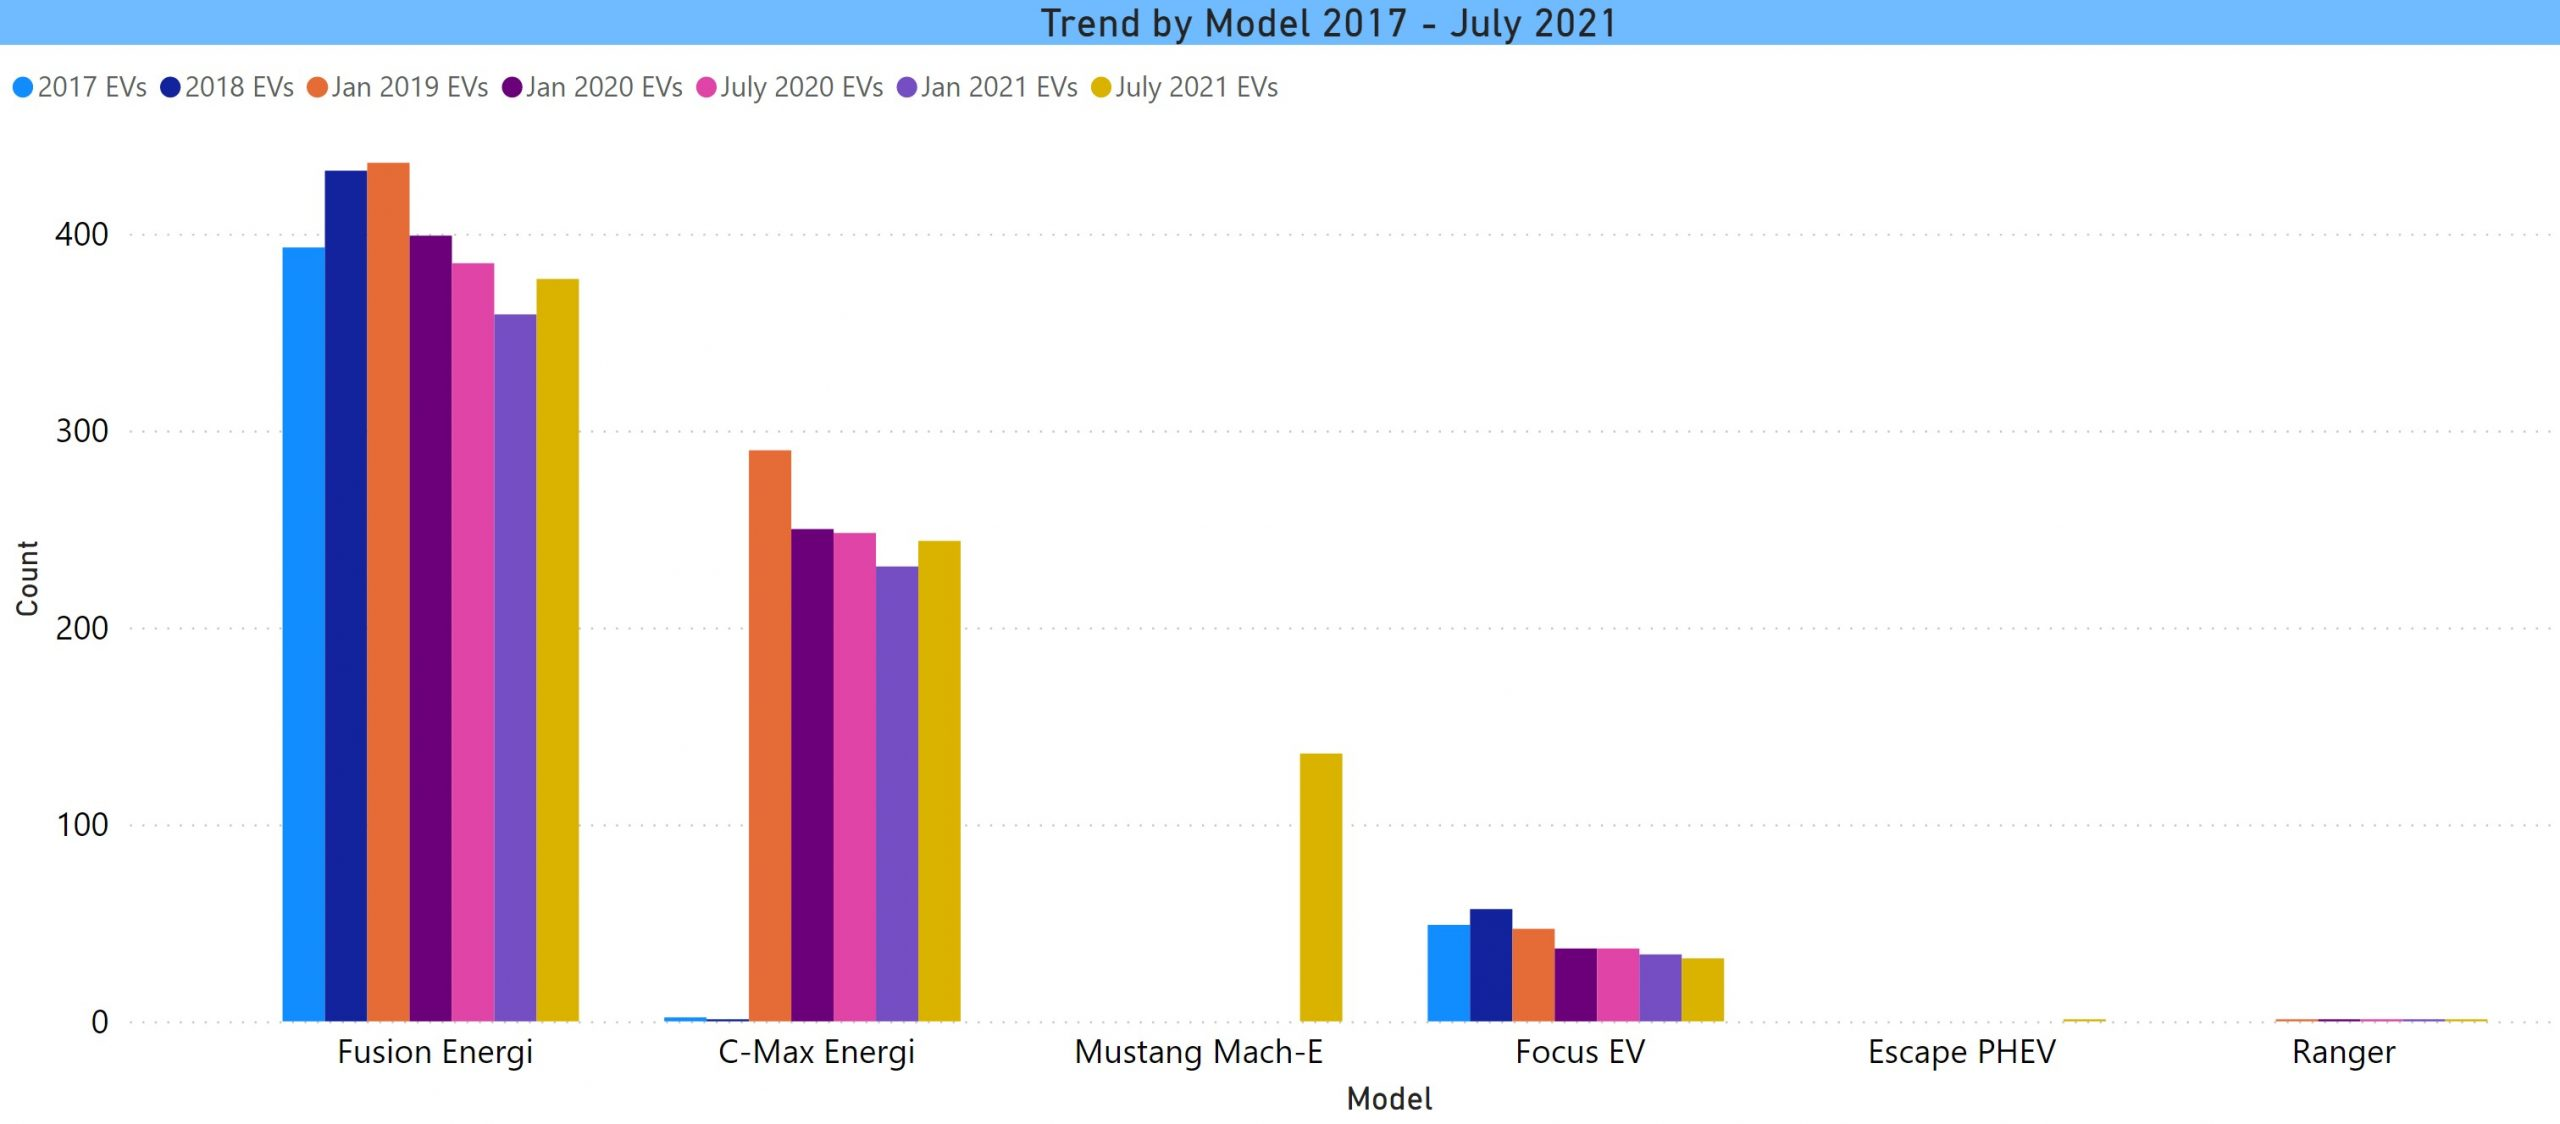 Ford trend by model